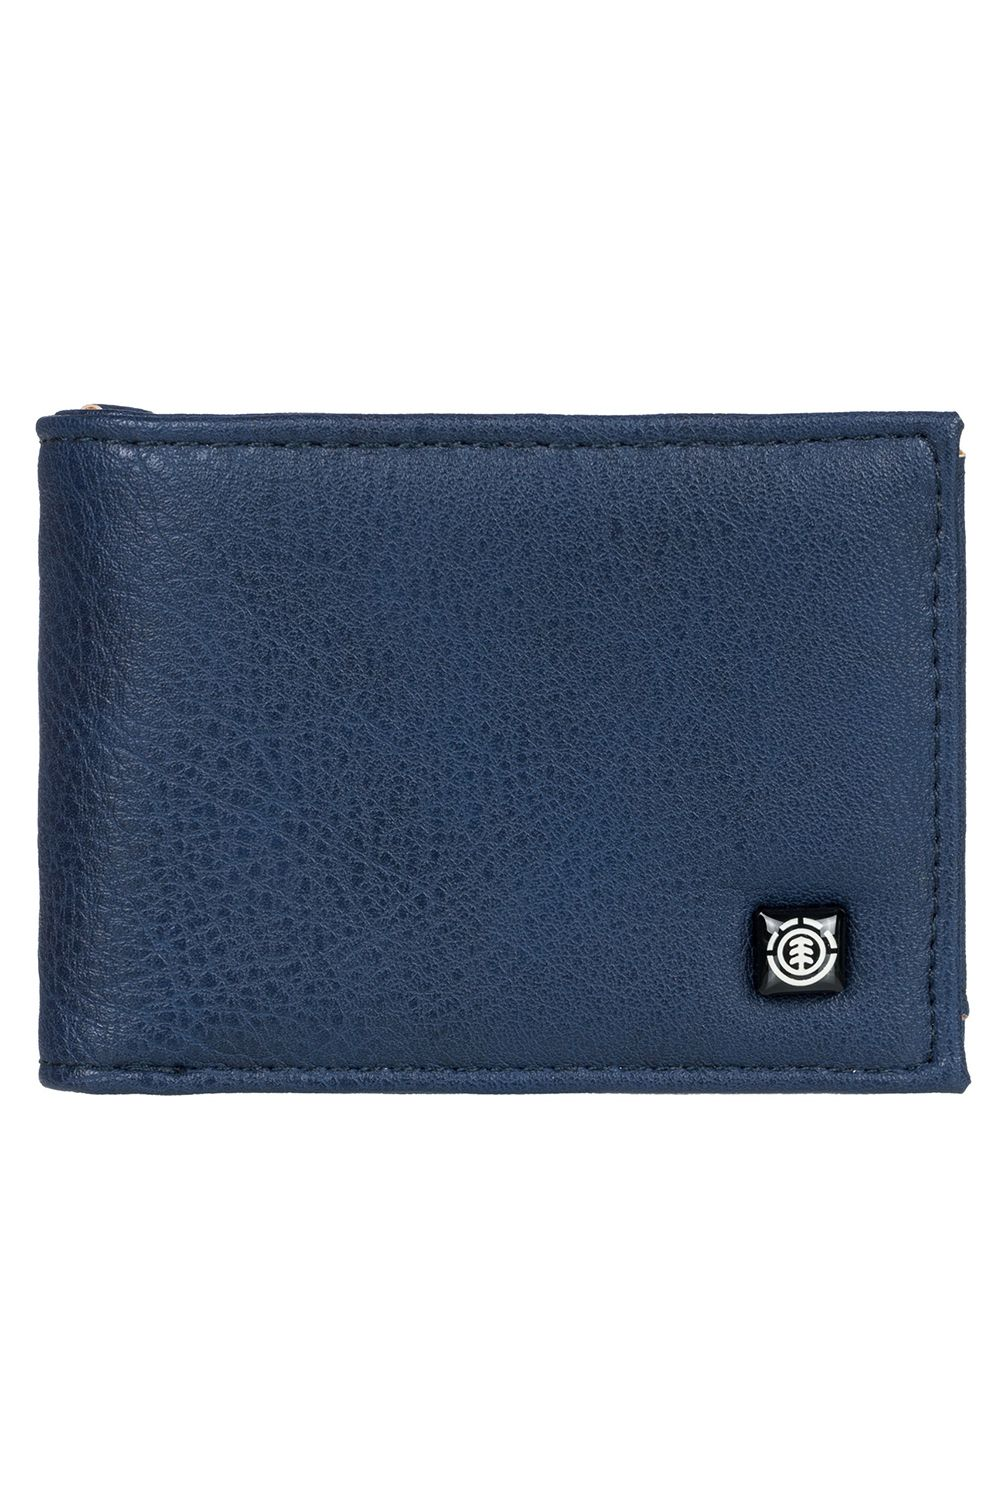 Carteira PU Element SEGUR WALLET Indigo